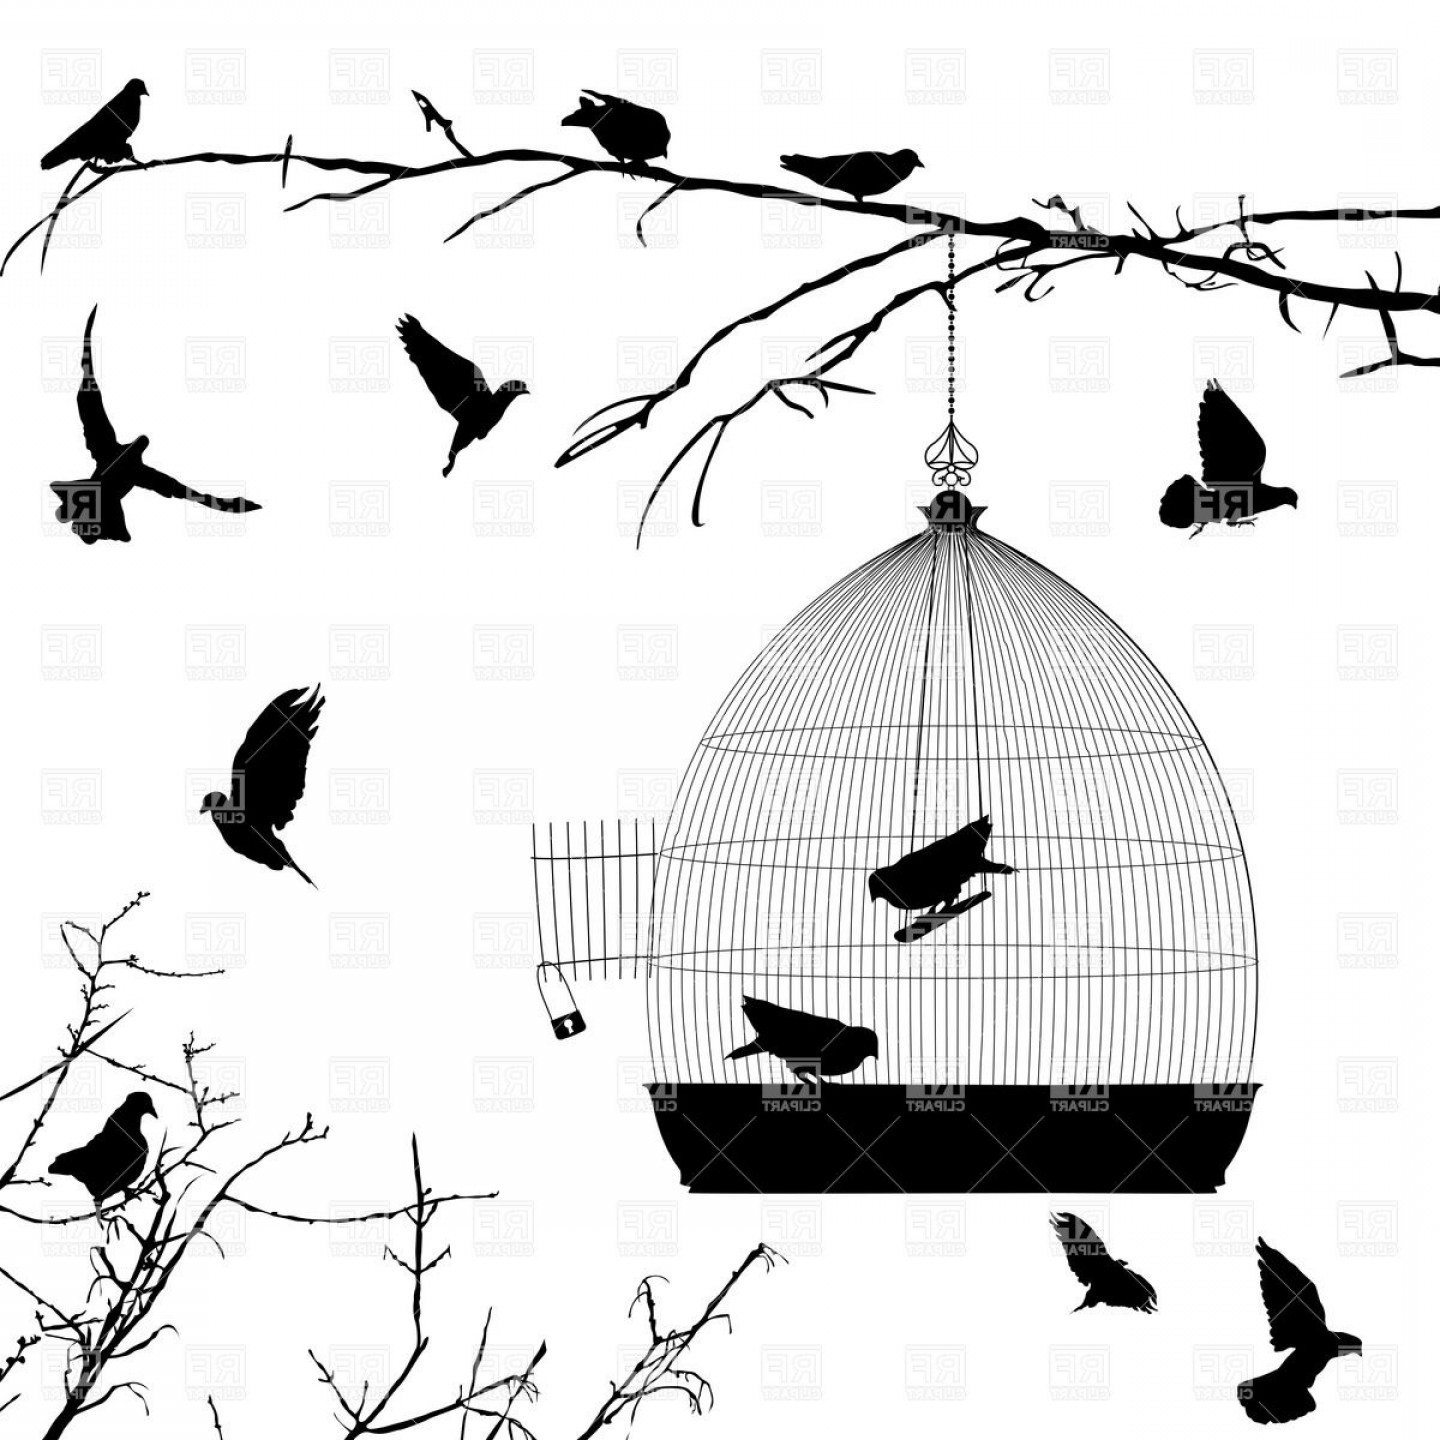 Black And White Bird Free Vector Graphics: Silhouettes Of Flying Birds And Birdcage On Branch Of Dry Tree Vector Clipart